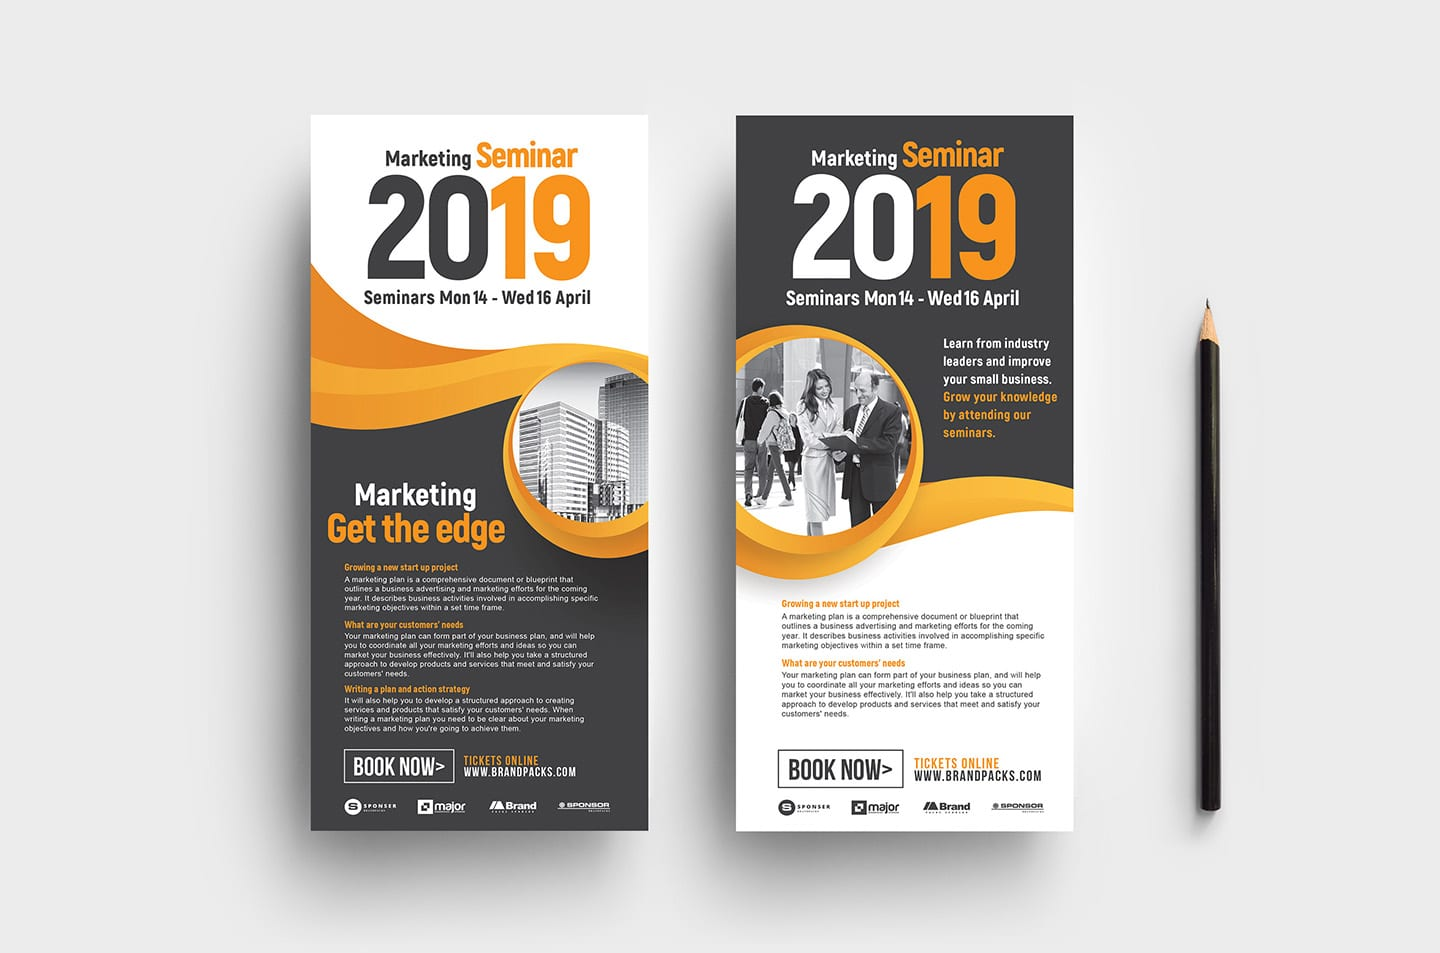 Marketing Seminar DL Card Templates